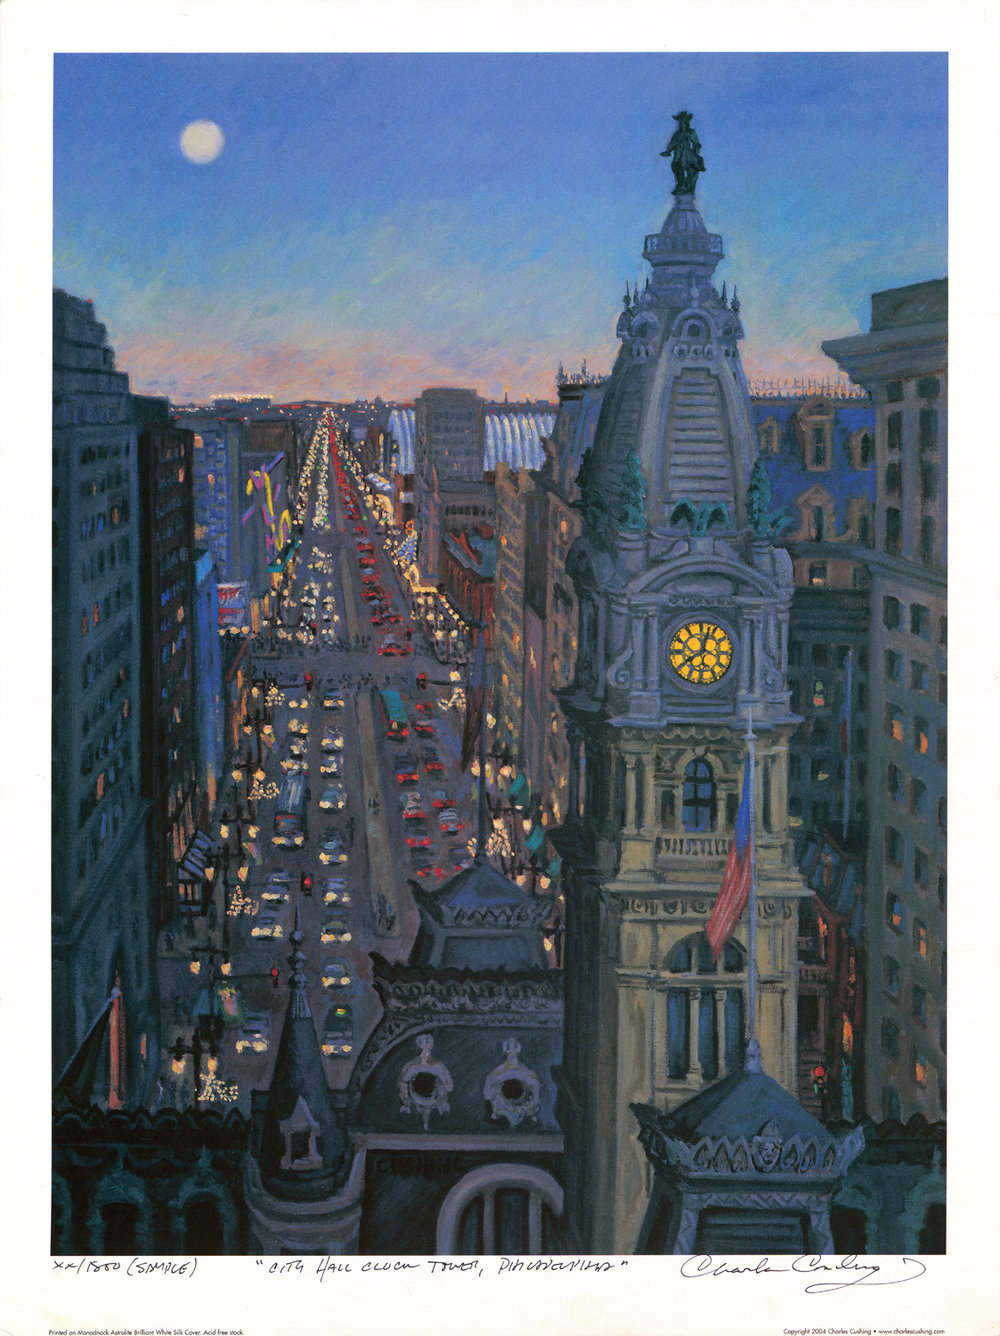 """City Hall Clock Tower""  24 x 18""  $30.00"